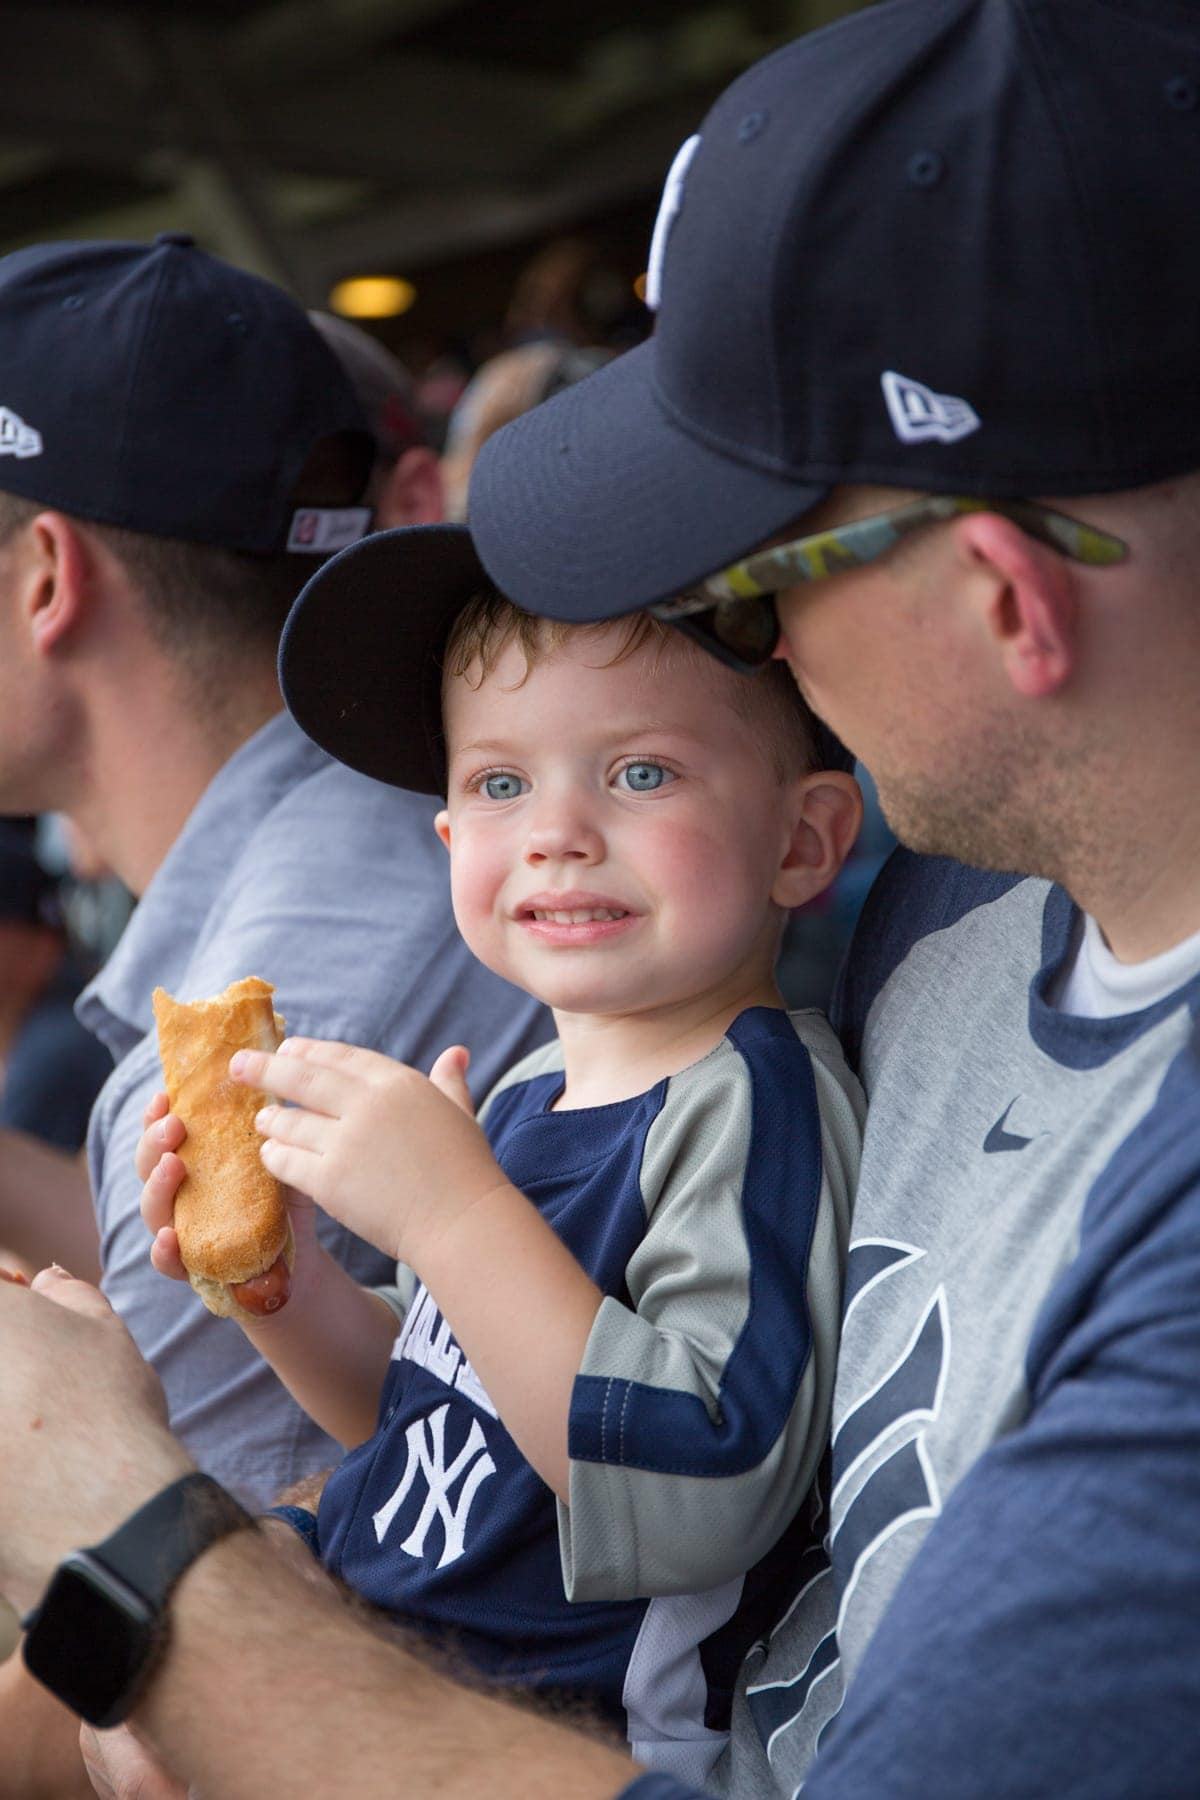 A young boy eating a hot dog